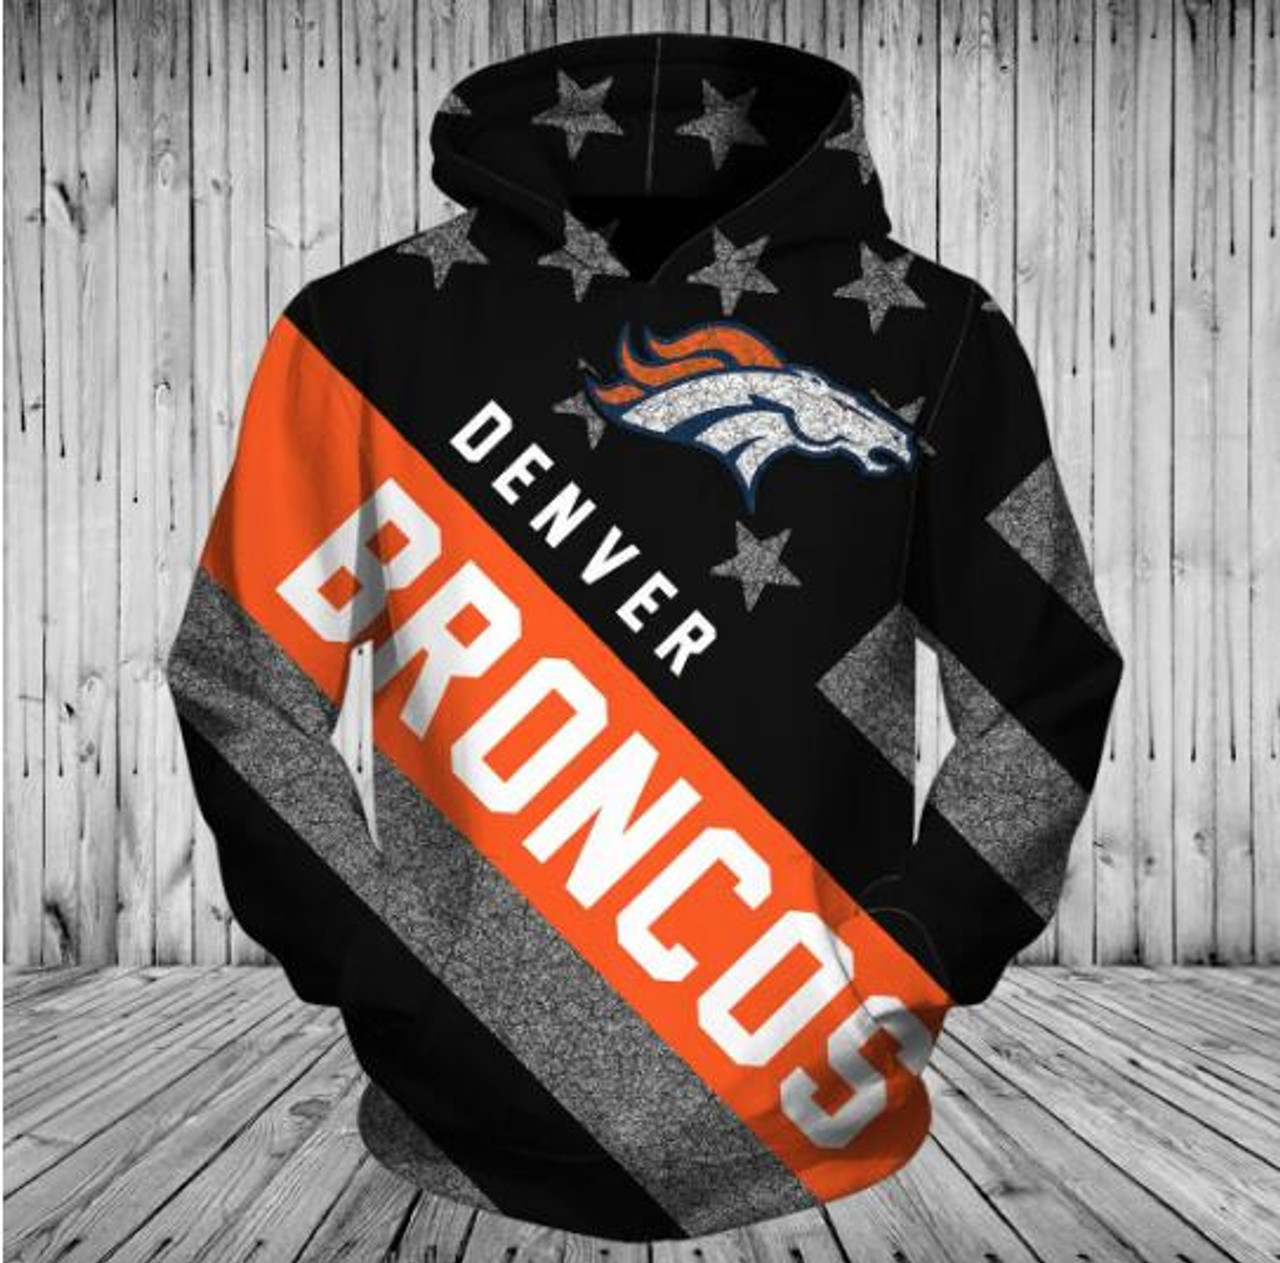 quality design 2d24e b7b63 **(OFFICIALLY-LICENSED-N.F.L.DENVER-BRONCOS-PULLOVER-HOODIES/ALL-OVER-3D-GRAPHIC-PRINTED-IN-BRONCOS-LOGOS  & OFFICIAL-BRONCOS-TEAM-COLORS & ...